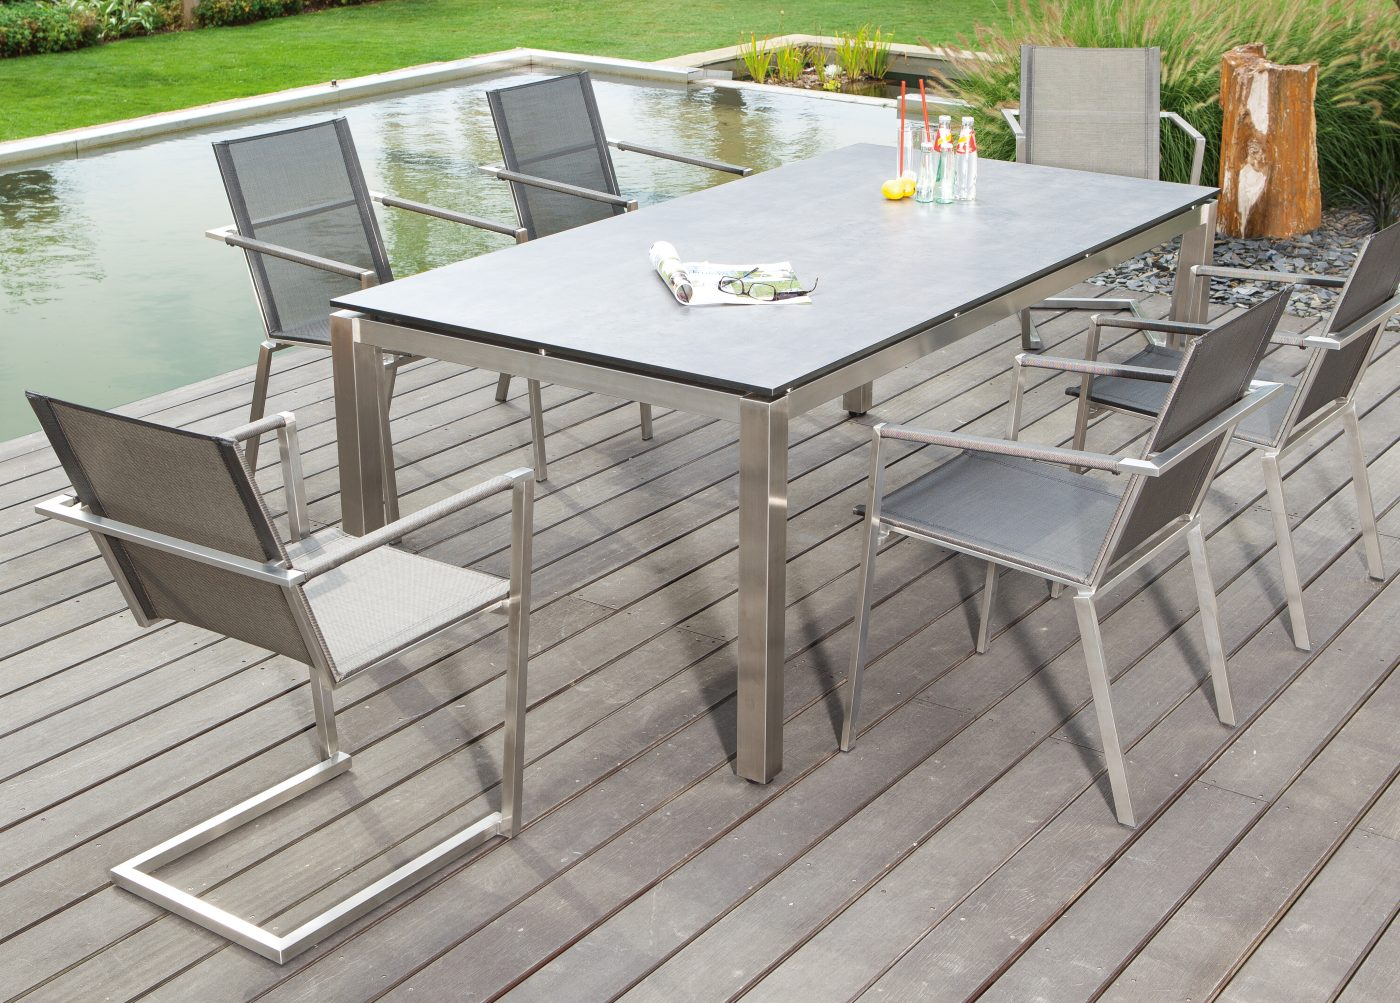 hochwertiger gartentisch tischgestell edelstahl tischplatte compact beton dunkel mit4 x. Black Bedroom Furniture Sets. Home Design Ideas